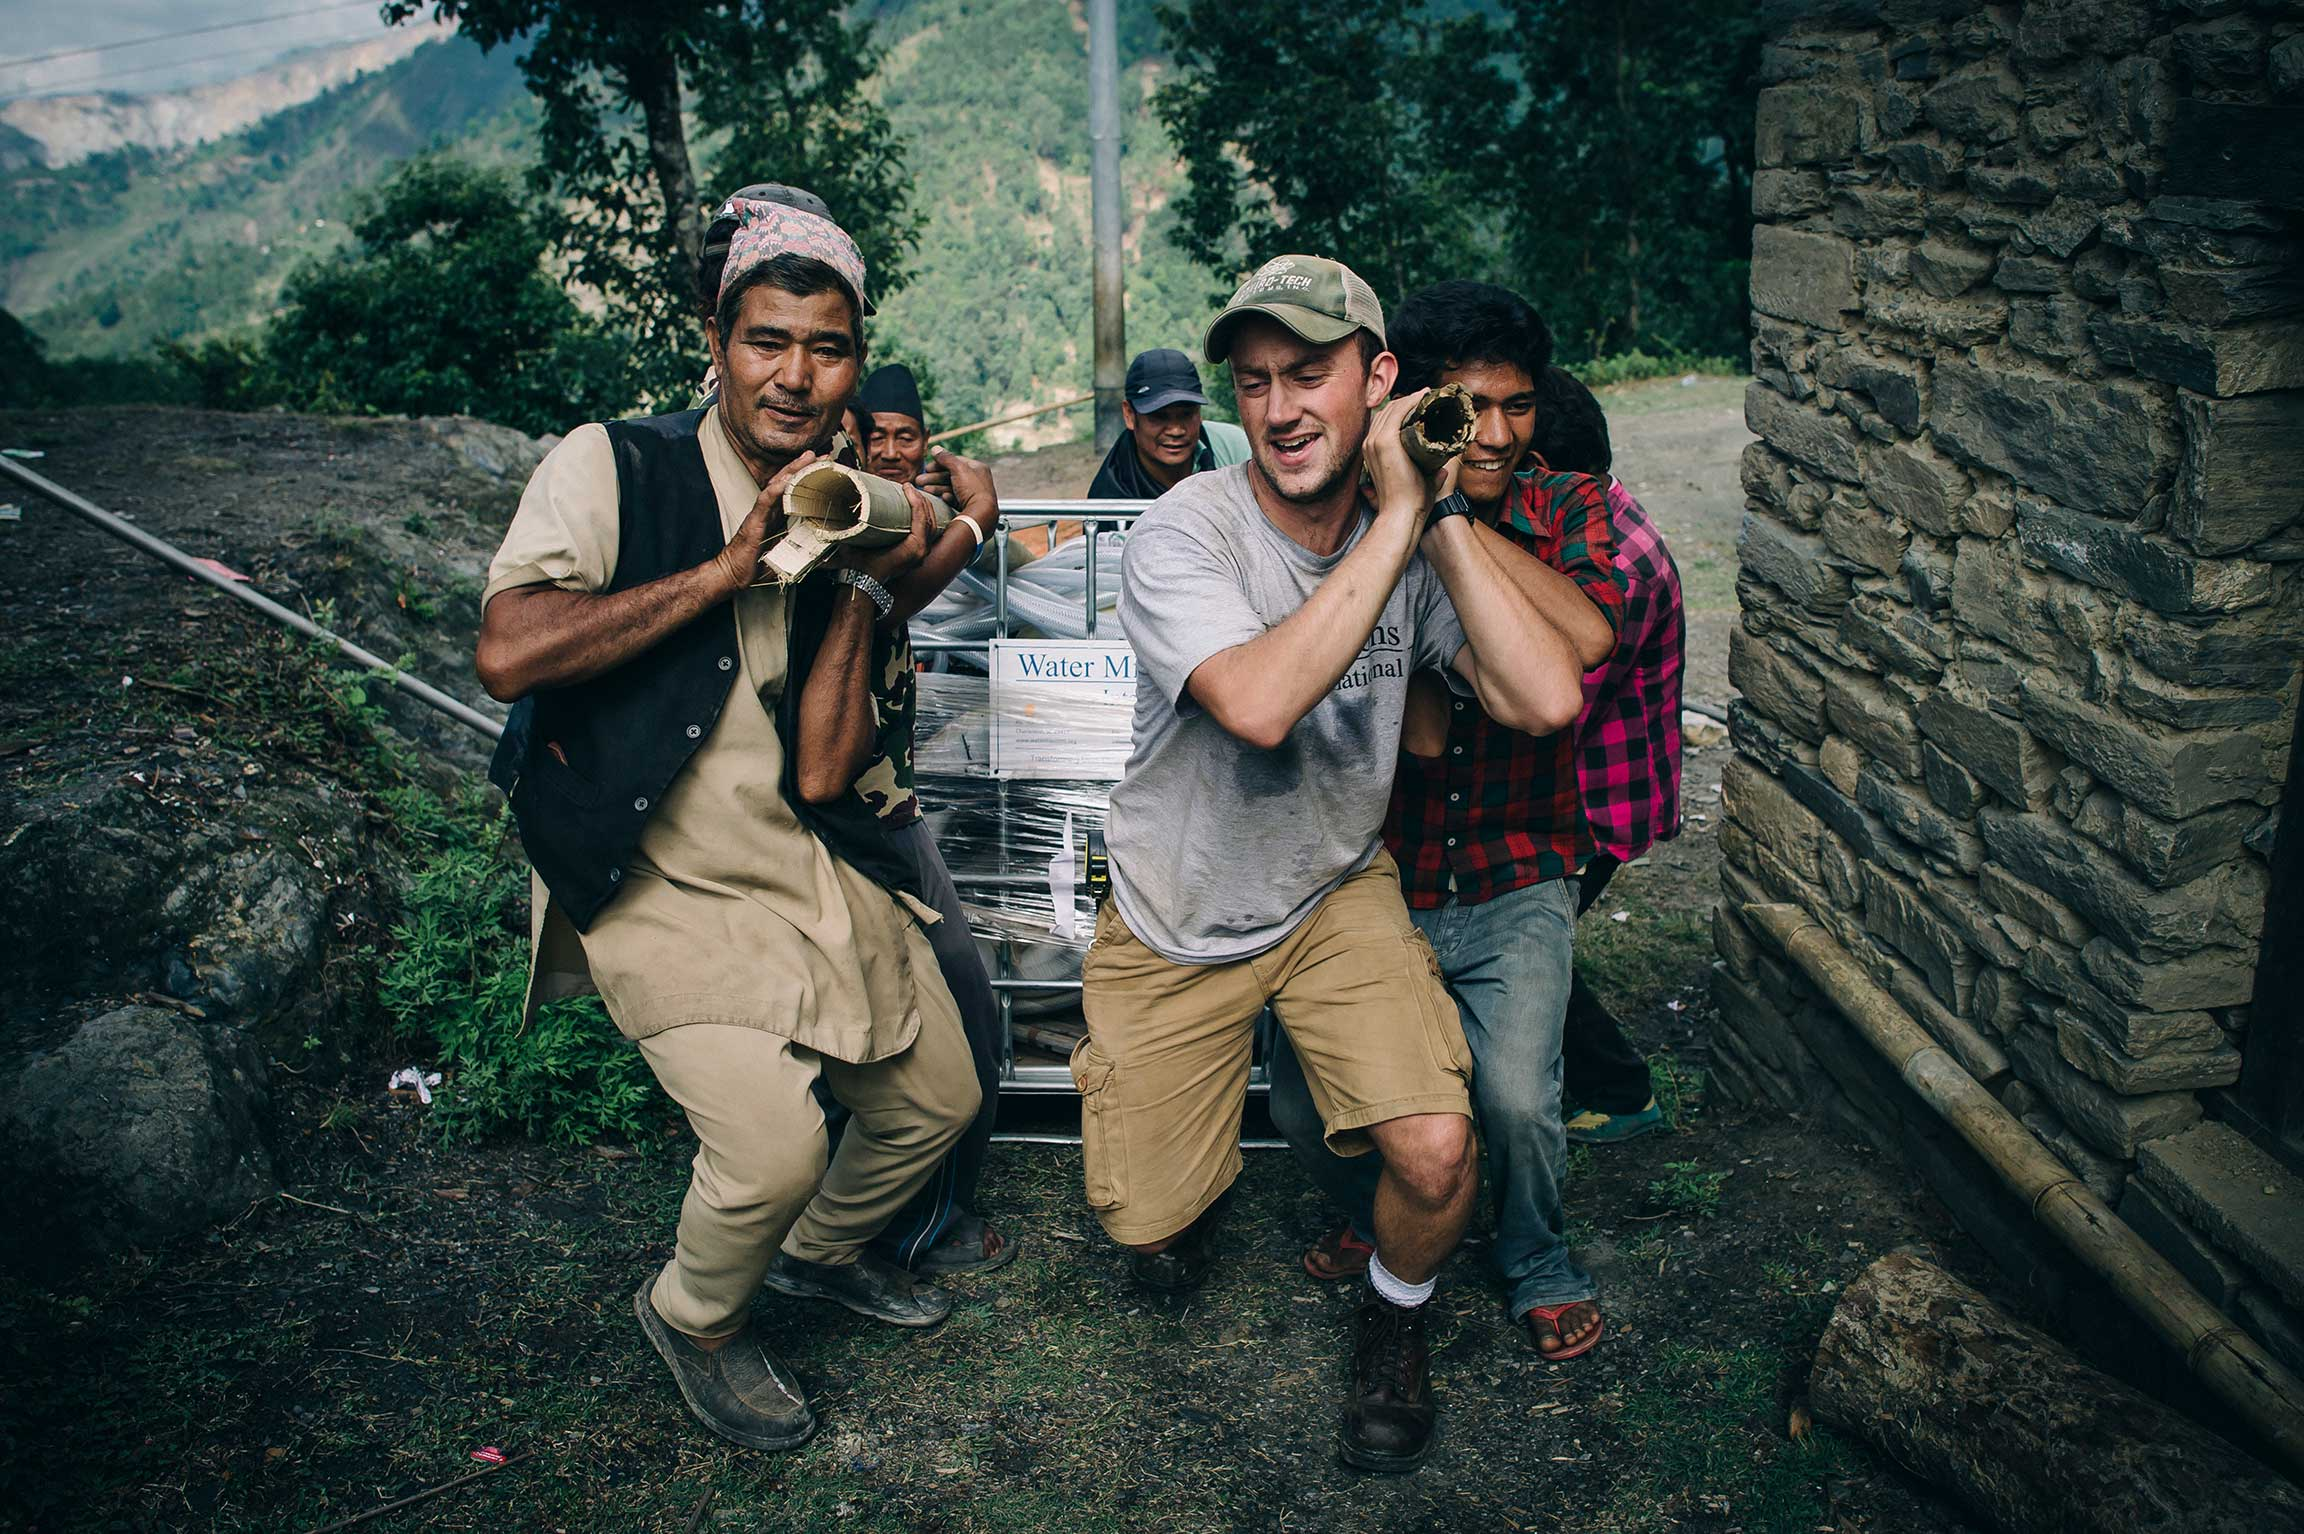 Water Mission staff work to implement a disaster safe water solution following the 2015 Nepal earthquake.